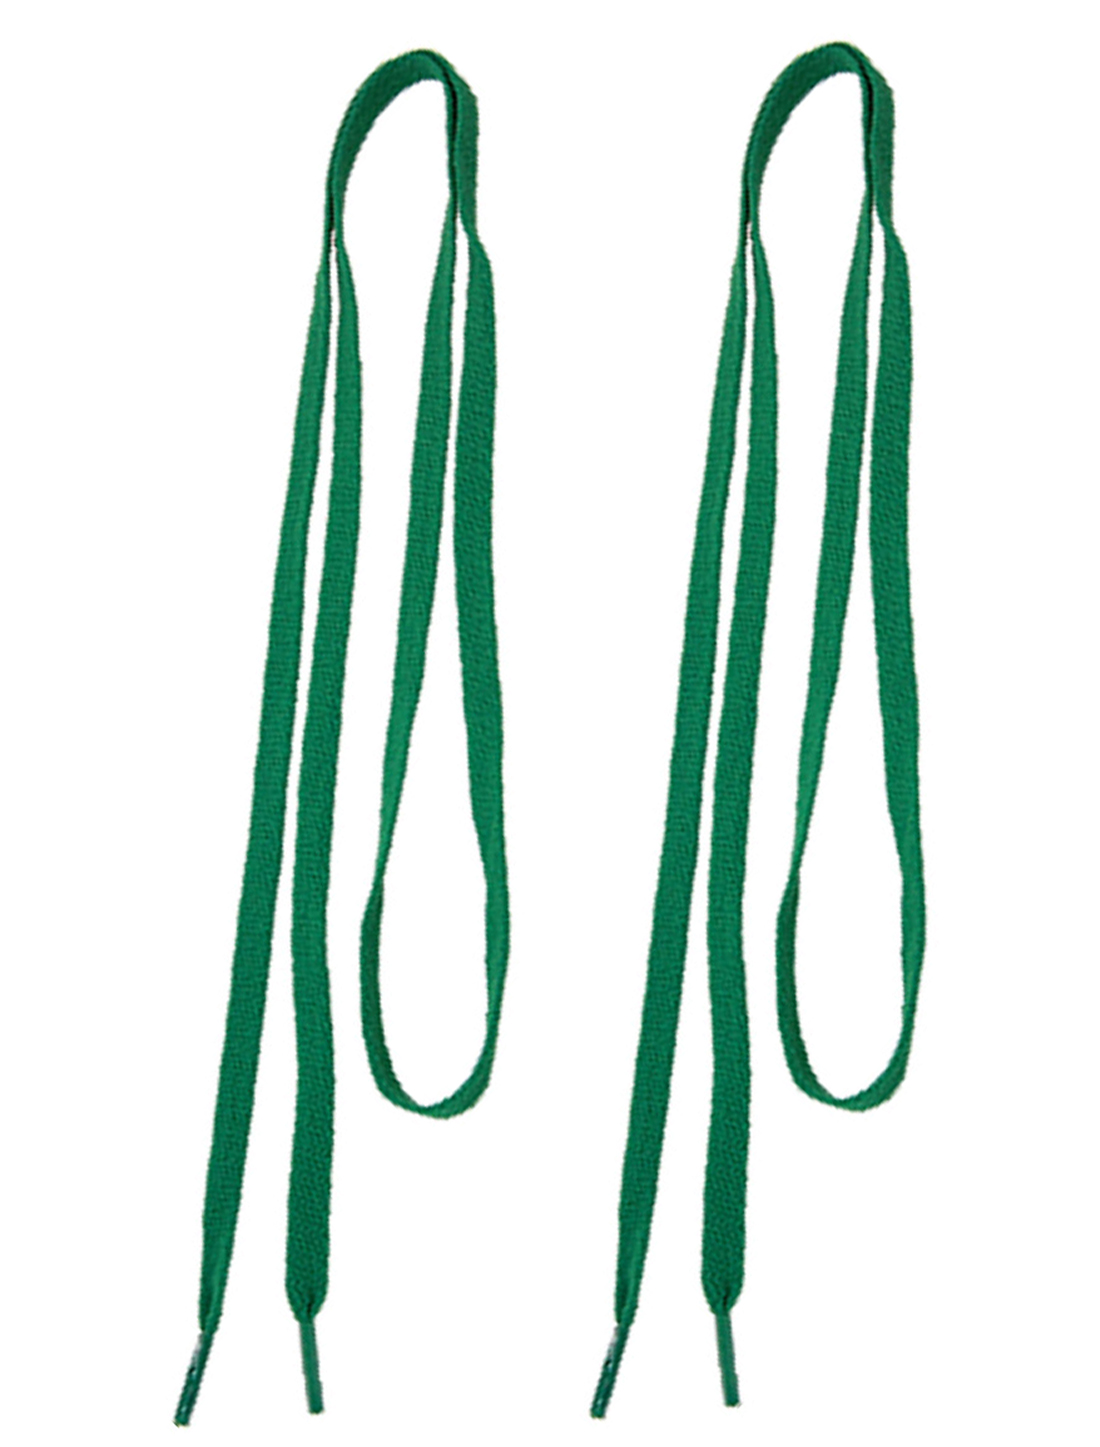 Bottle Green Flat Polyester Shoestring Bootlaces 3 Pair